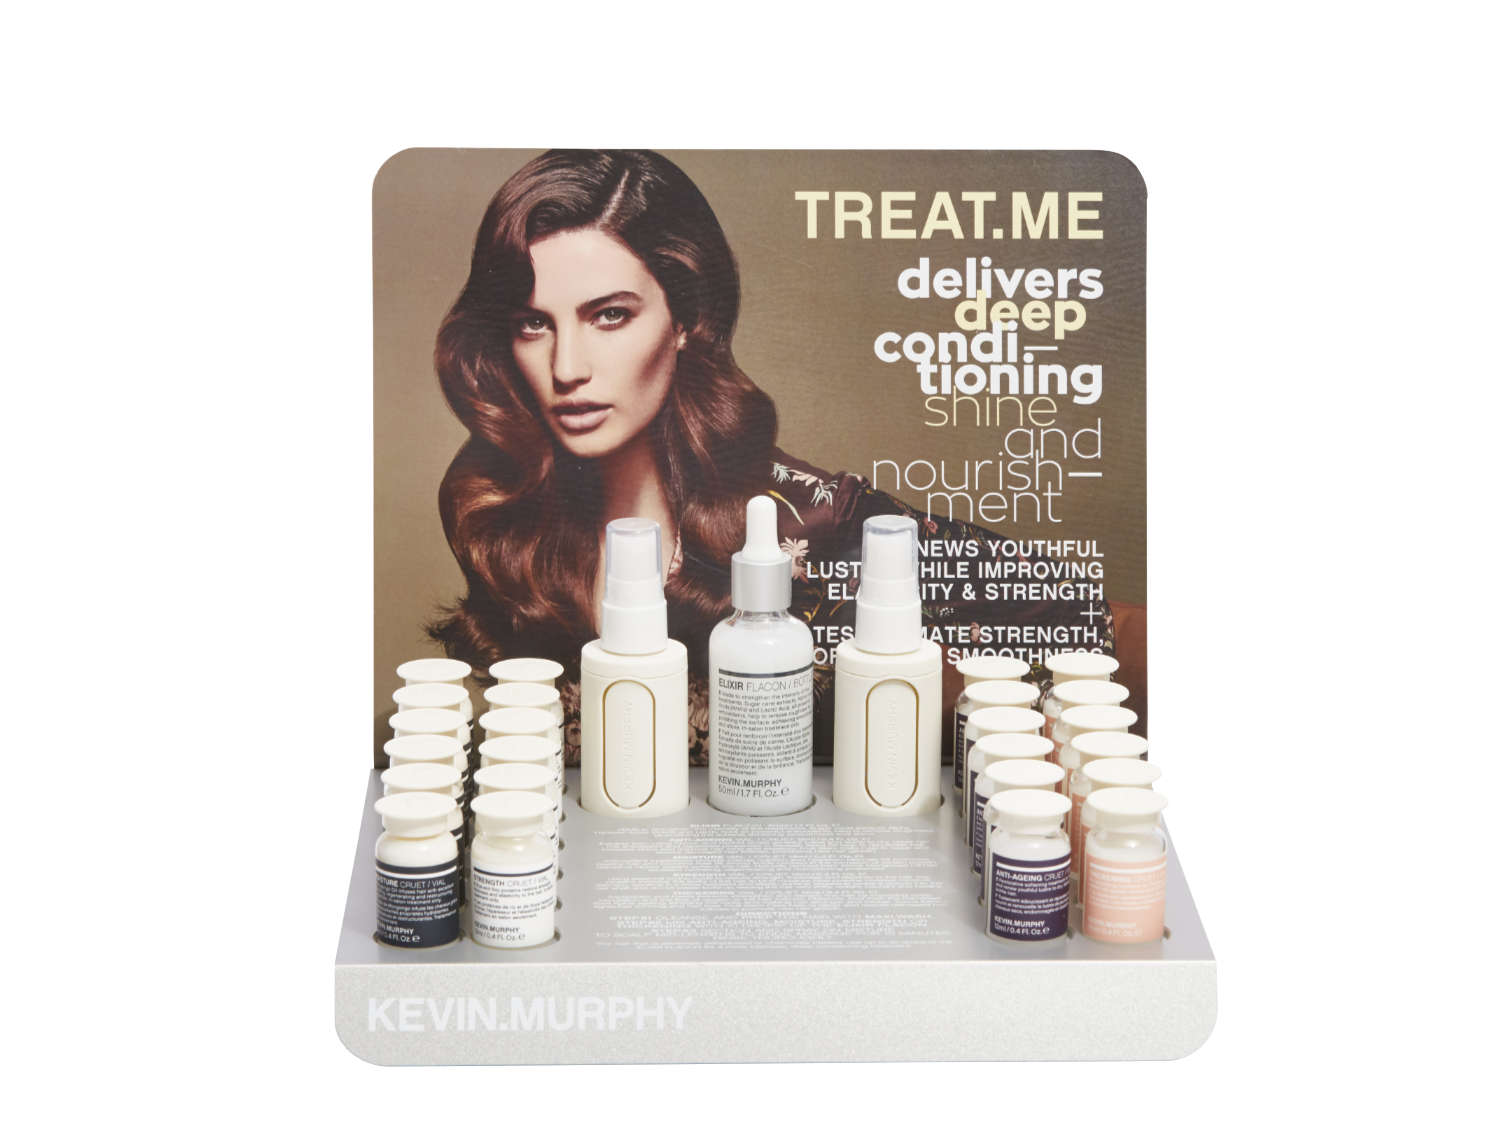 Arma Beauty - Kevin Murphy - TREAT.ME